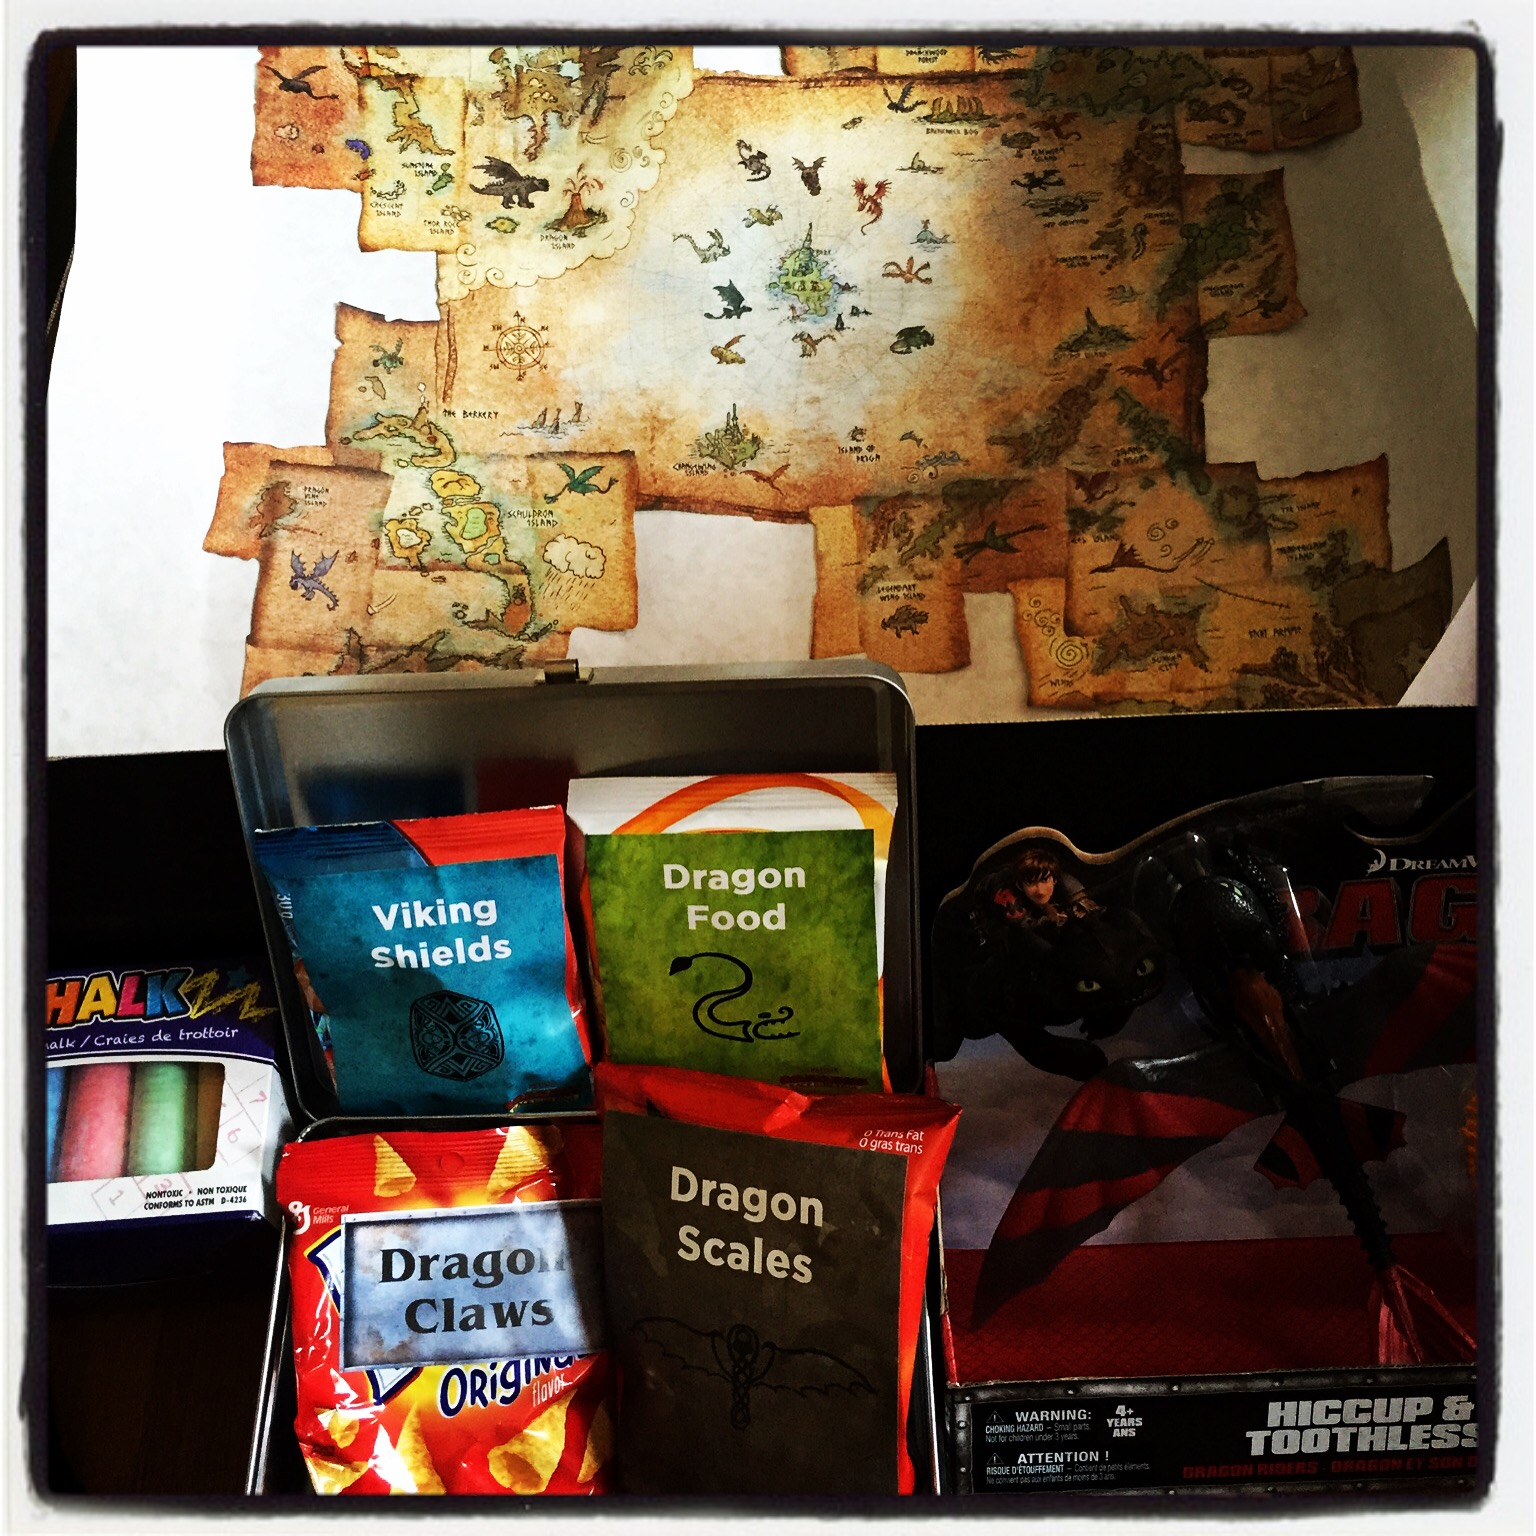 This Is Most Of What Was Inside The Package A Copy Of The Map That